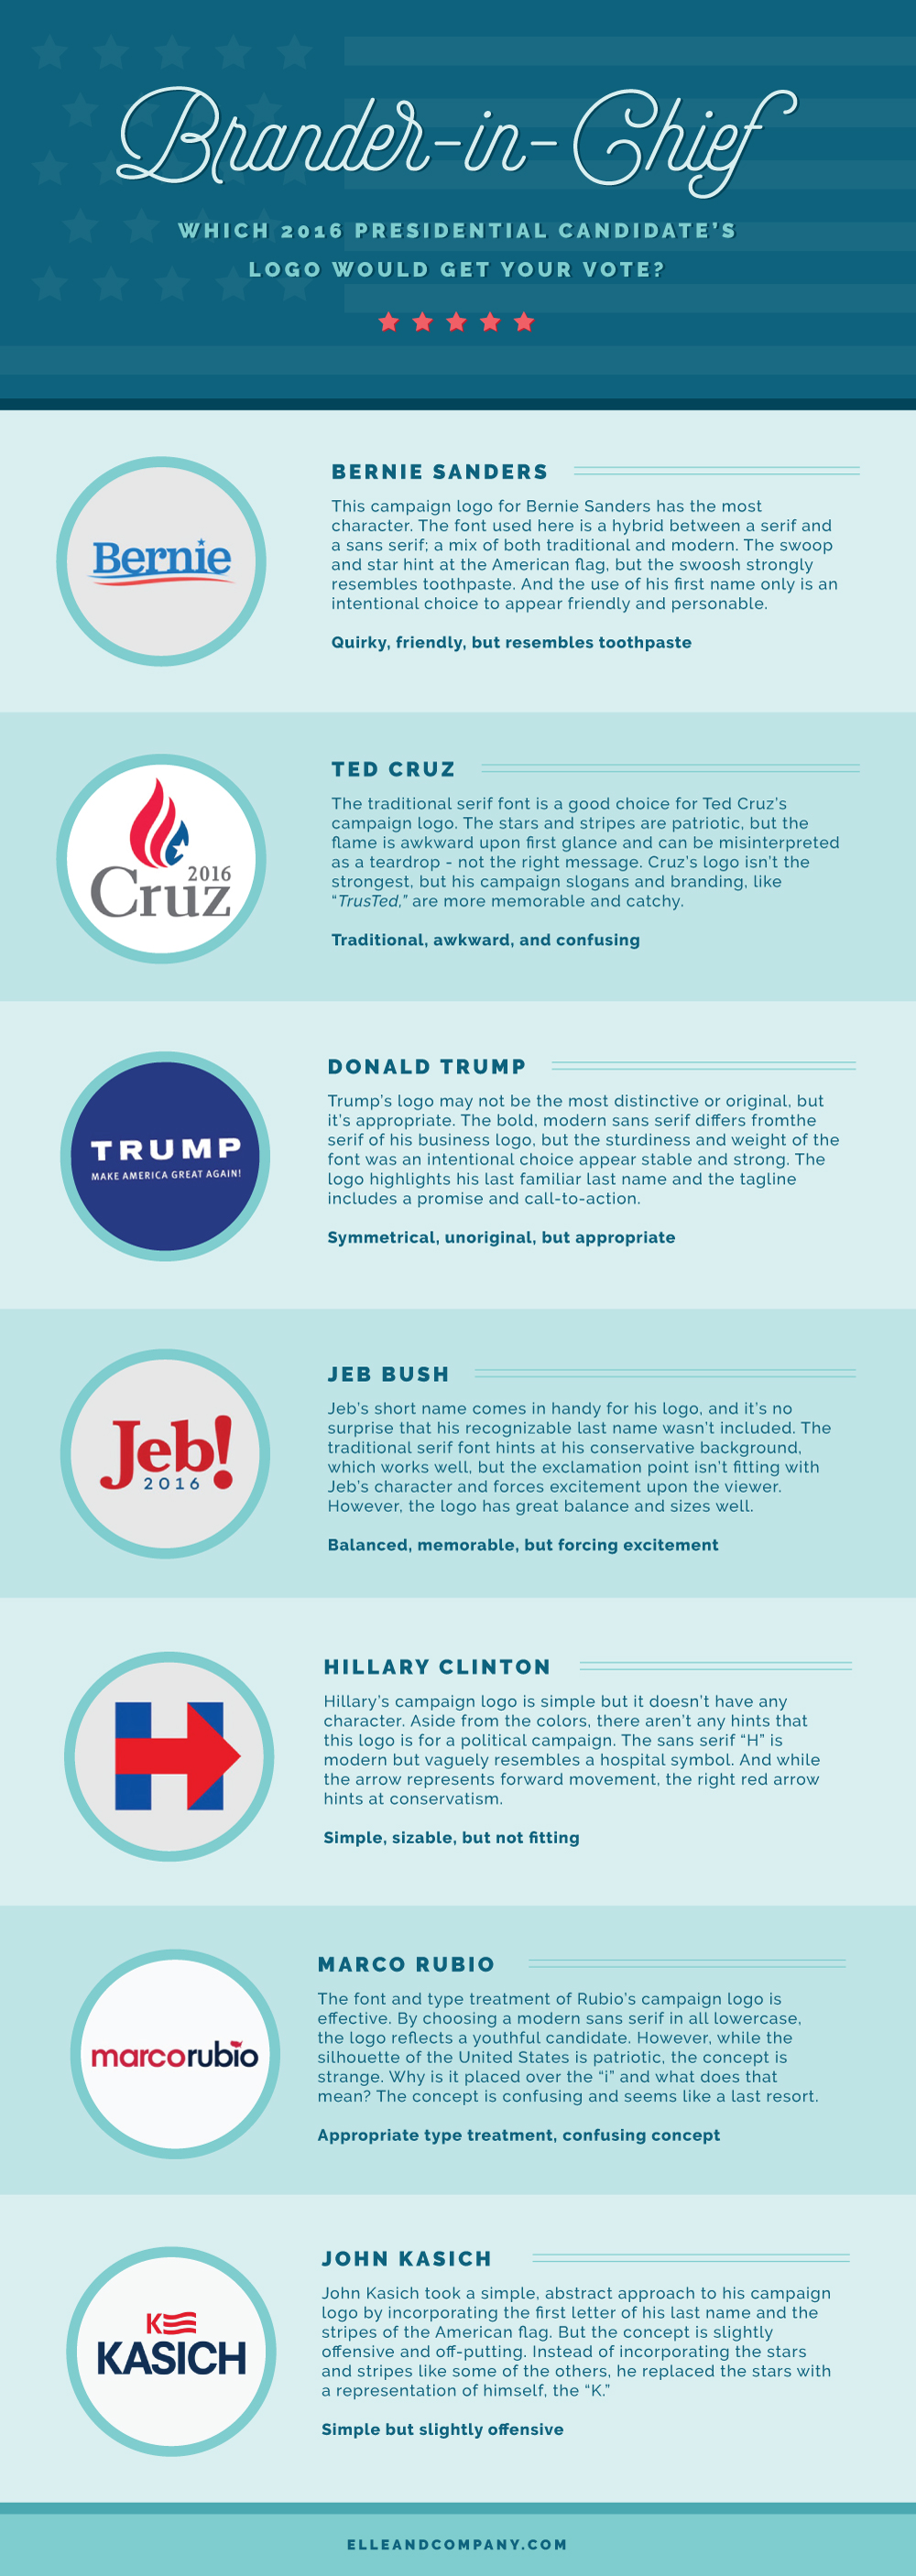 Brander-in-Chief: Which 2016 presidential candidate's logo would get your vote? - Elle & Company